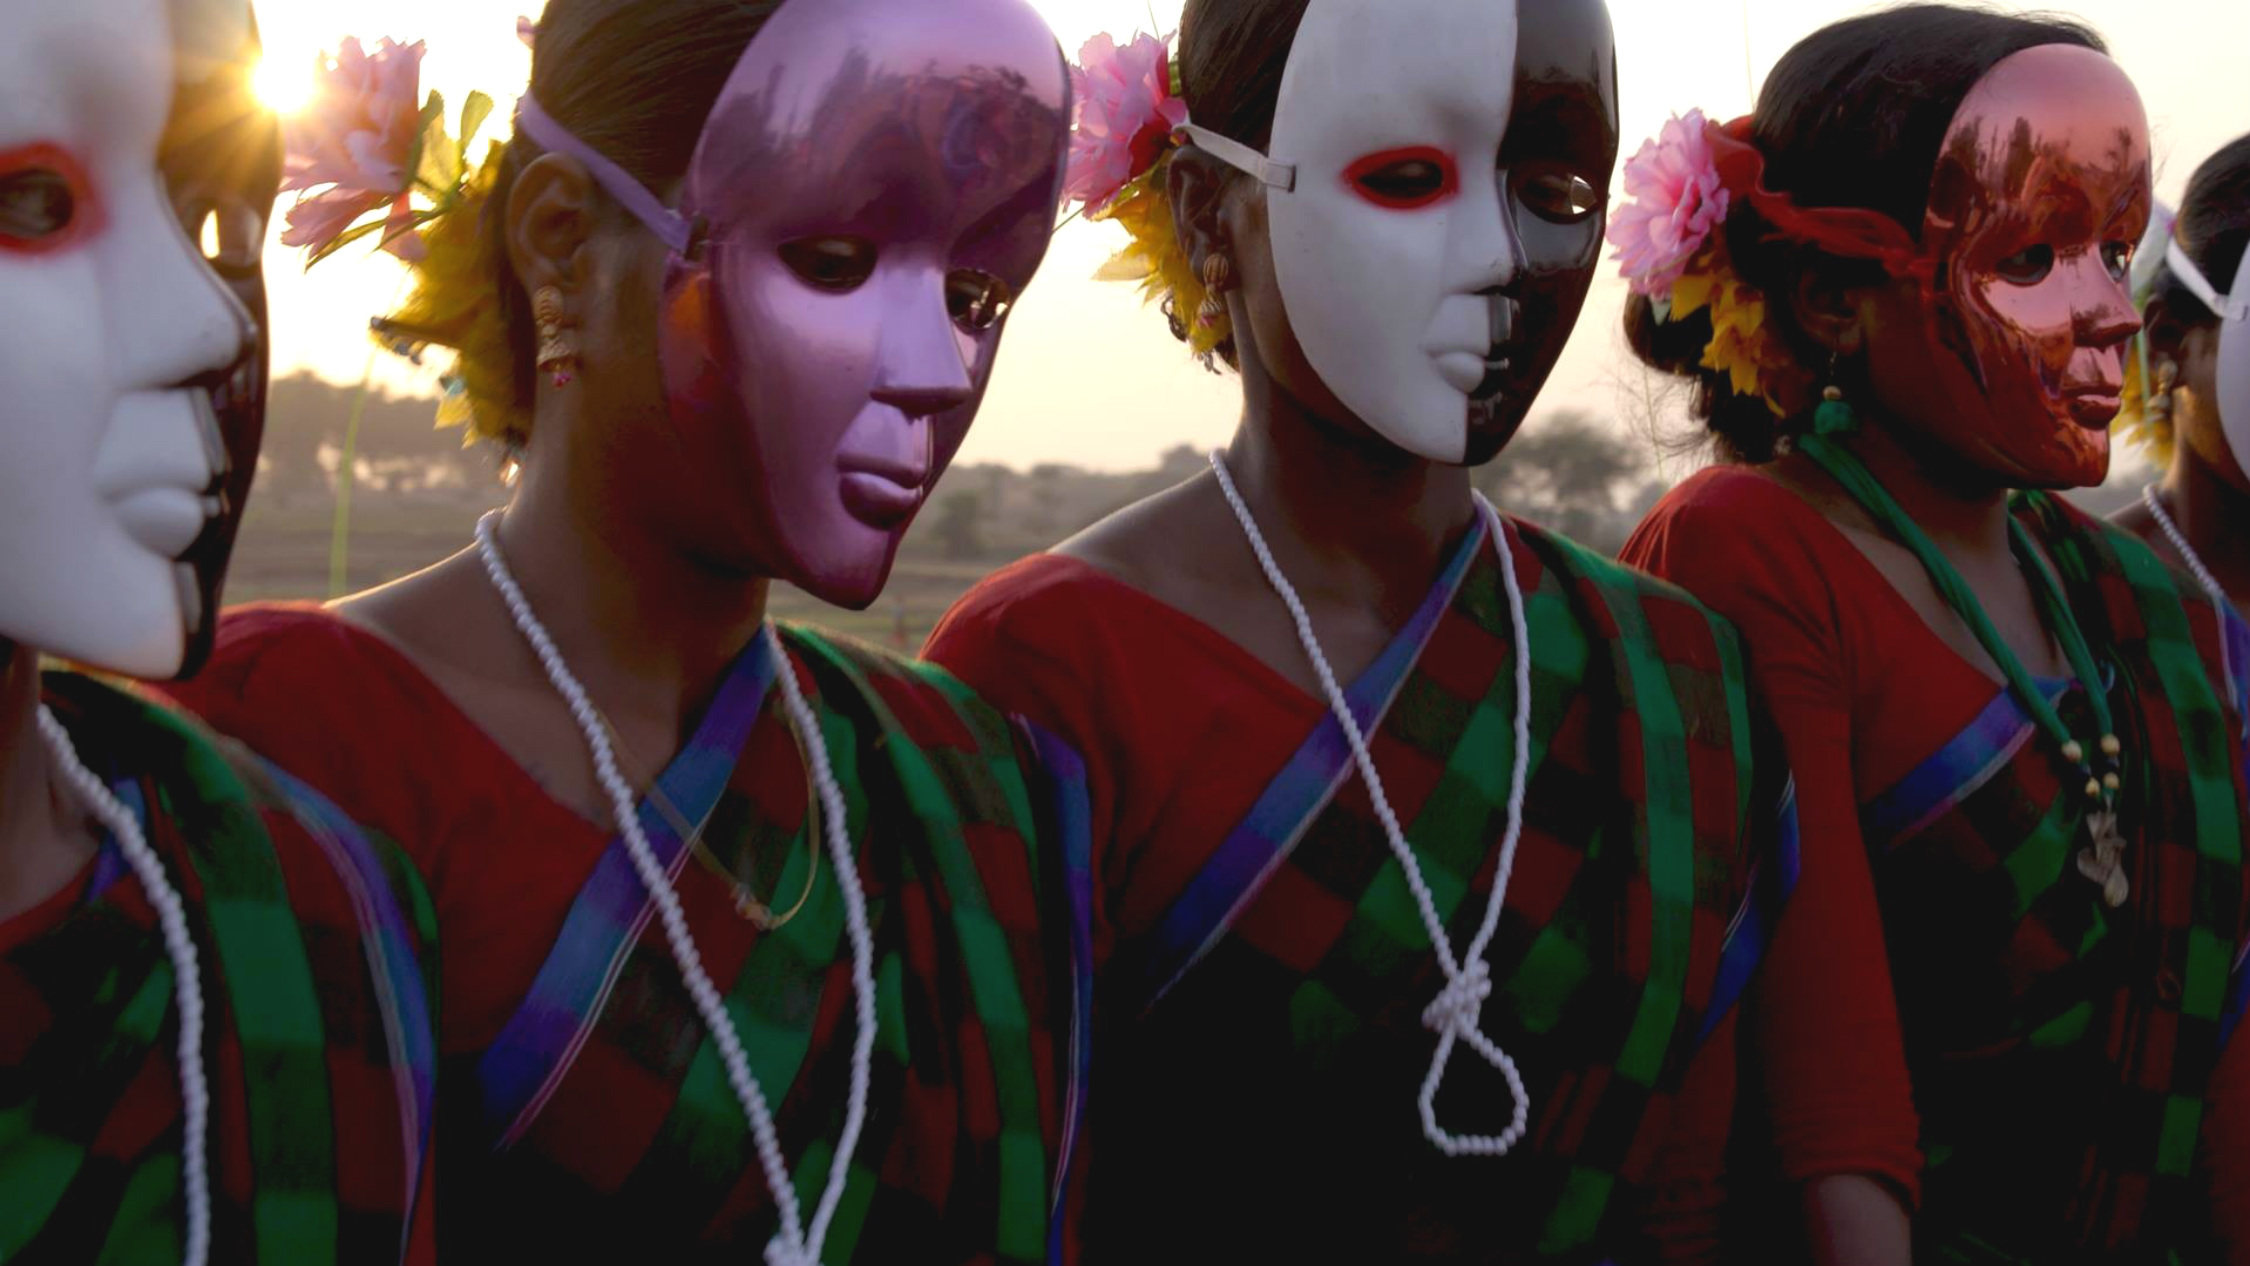 A film still featuring women wearing saris with full-face drama masks over their faces